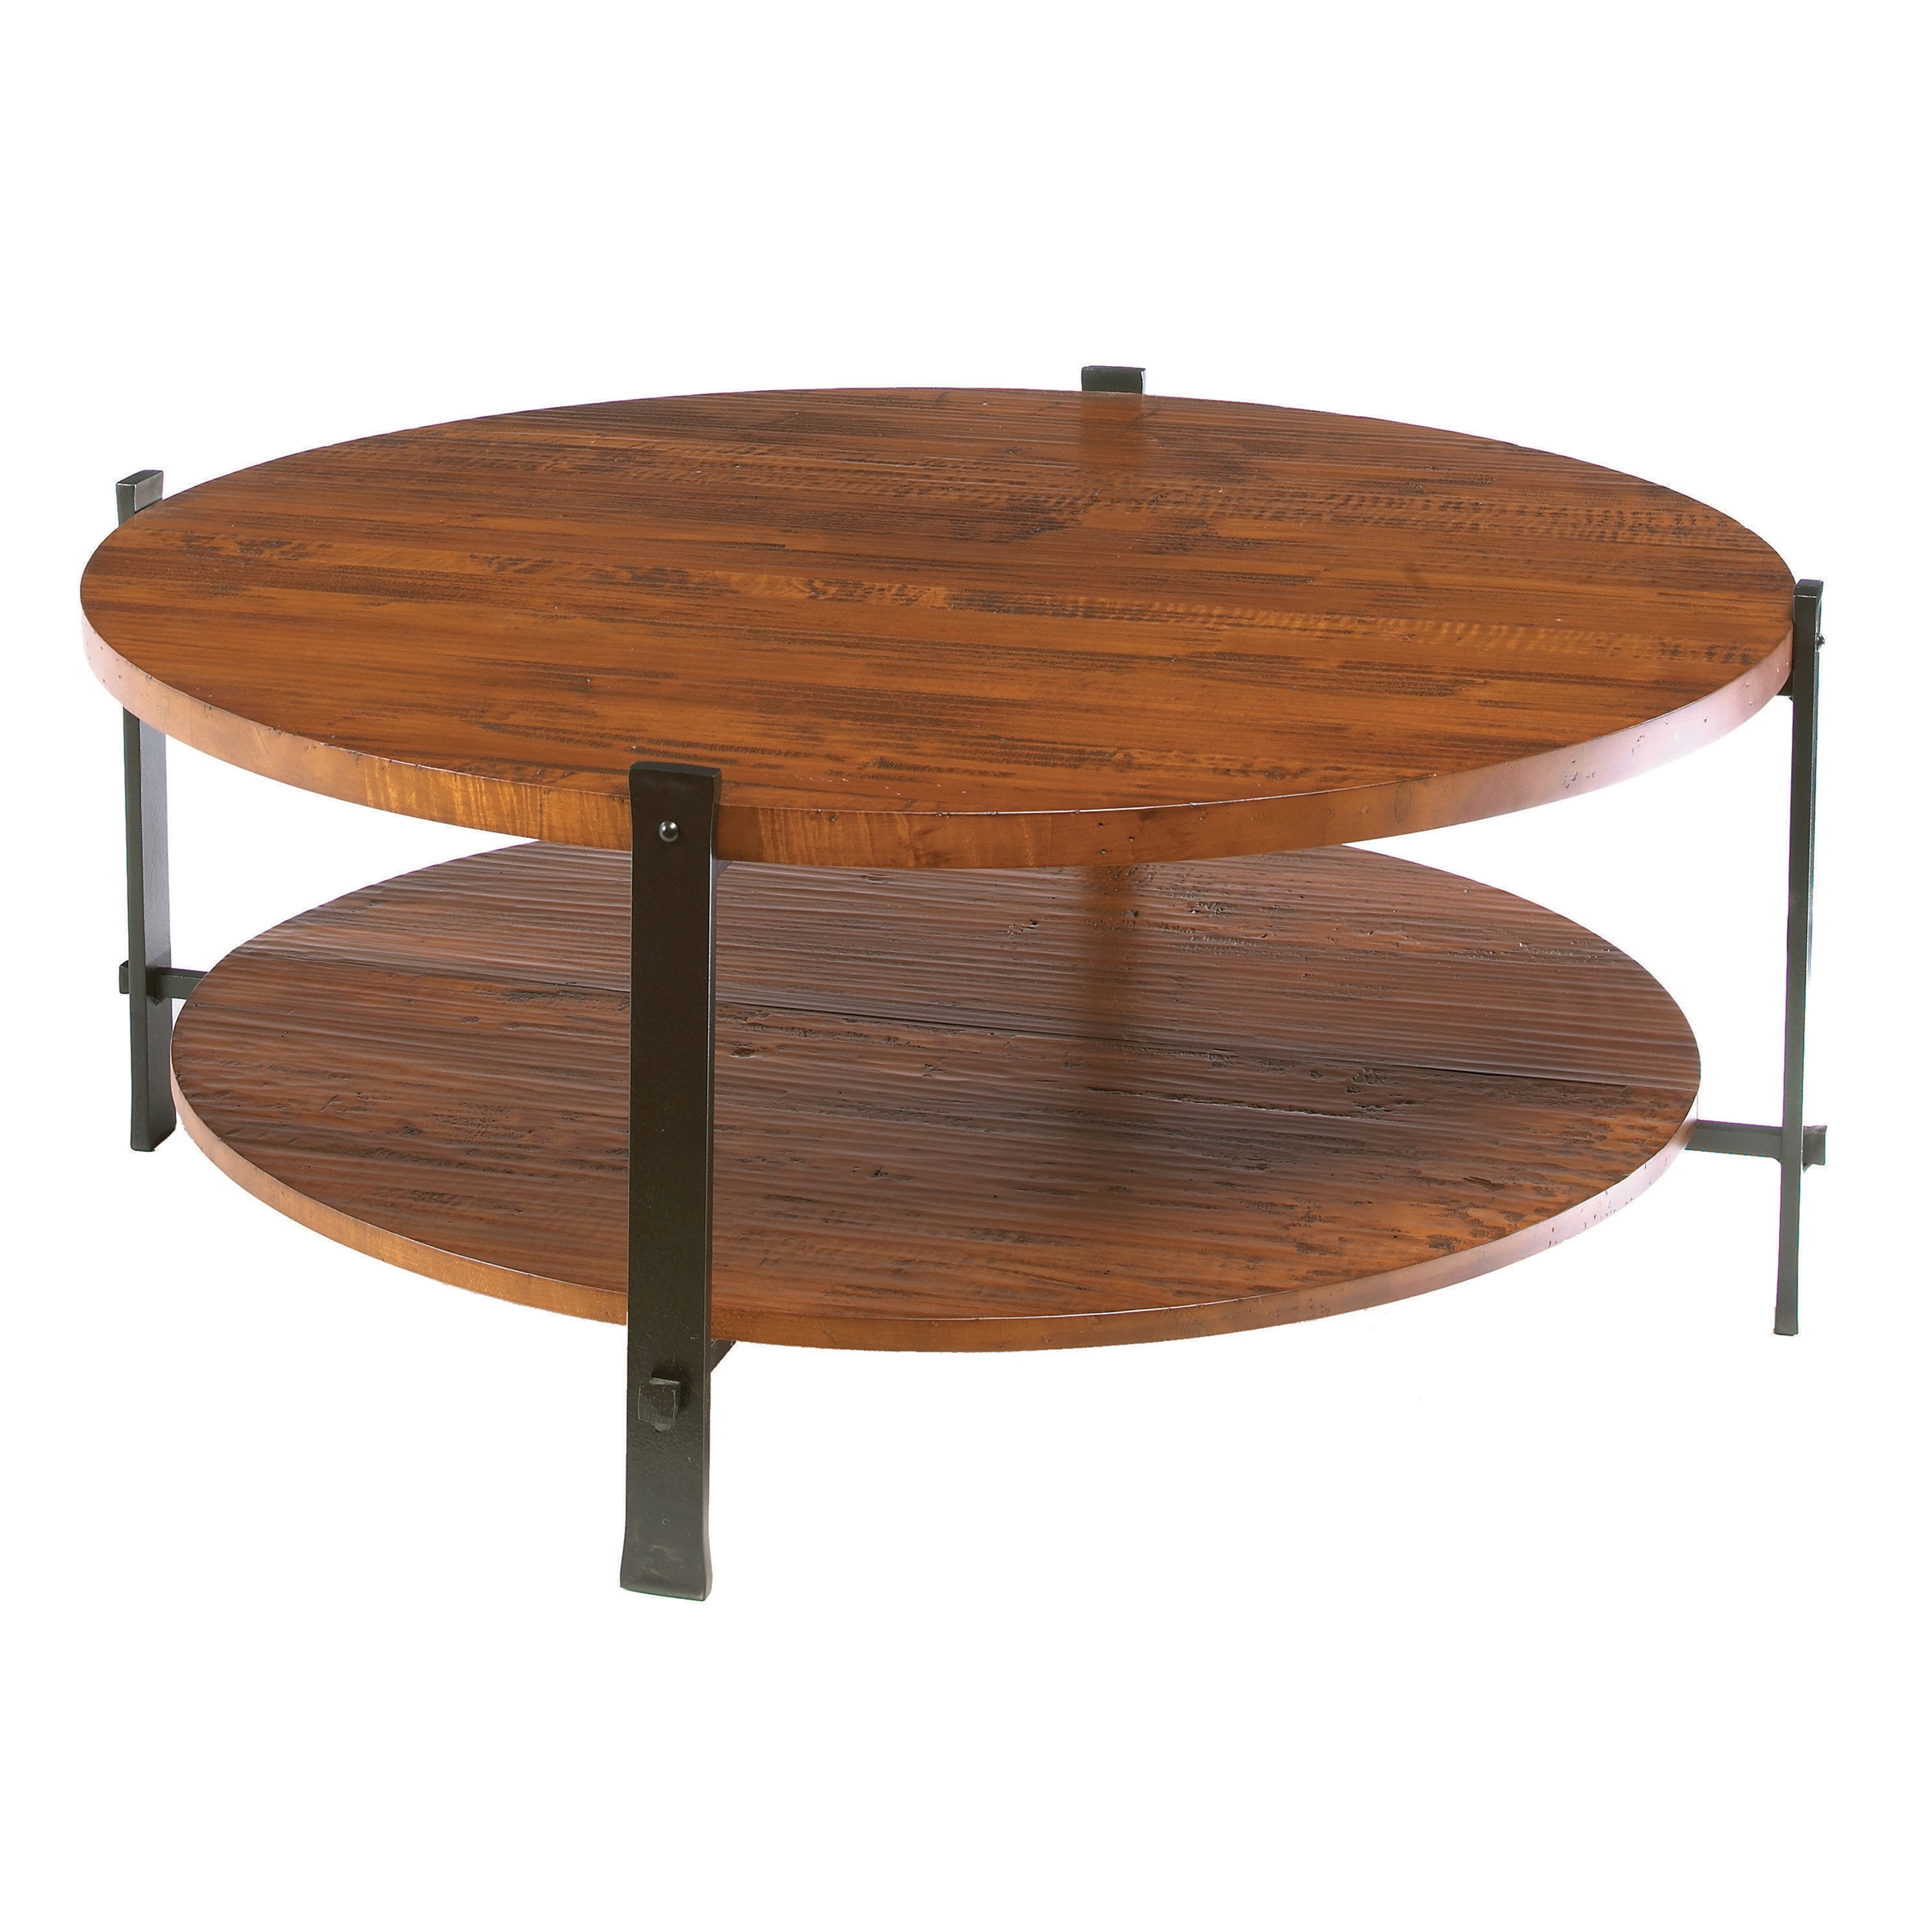 Wrought iron timber round cocktail table by charleston forge Round cocktail table